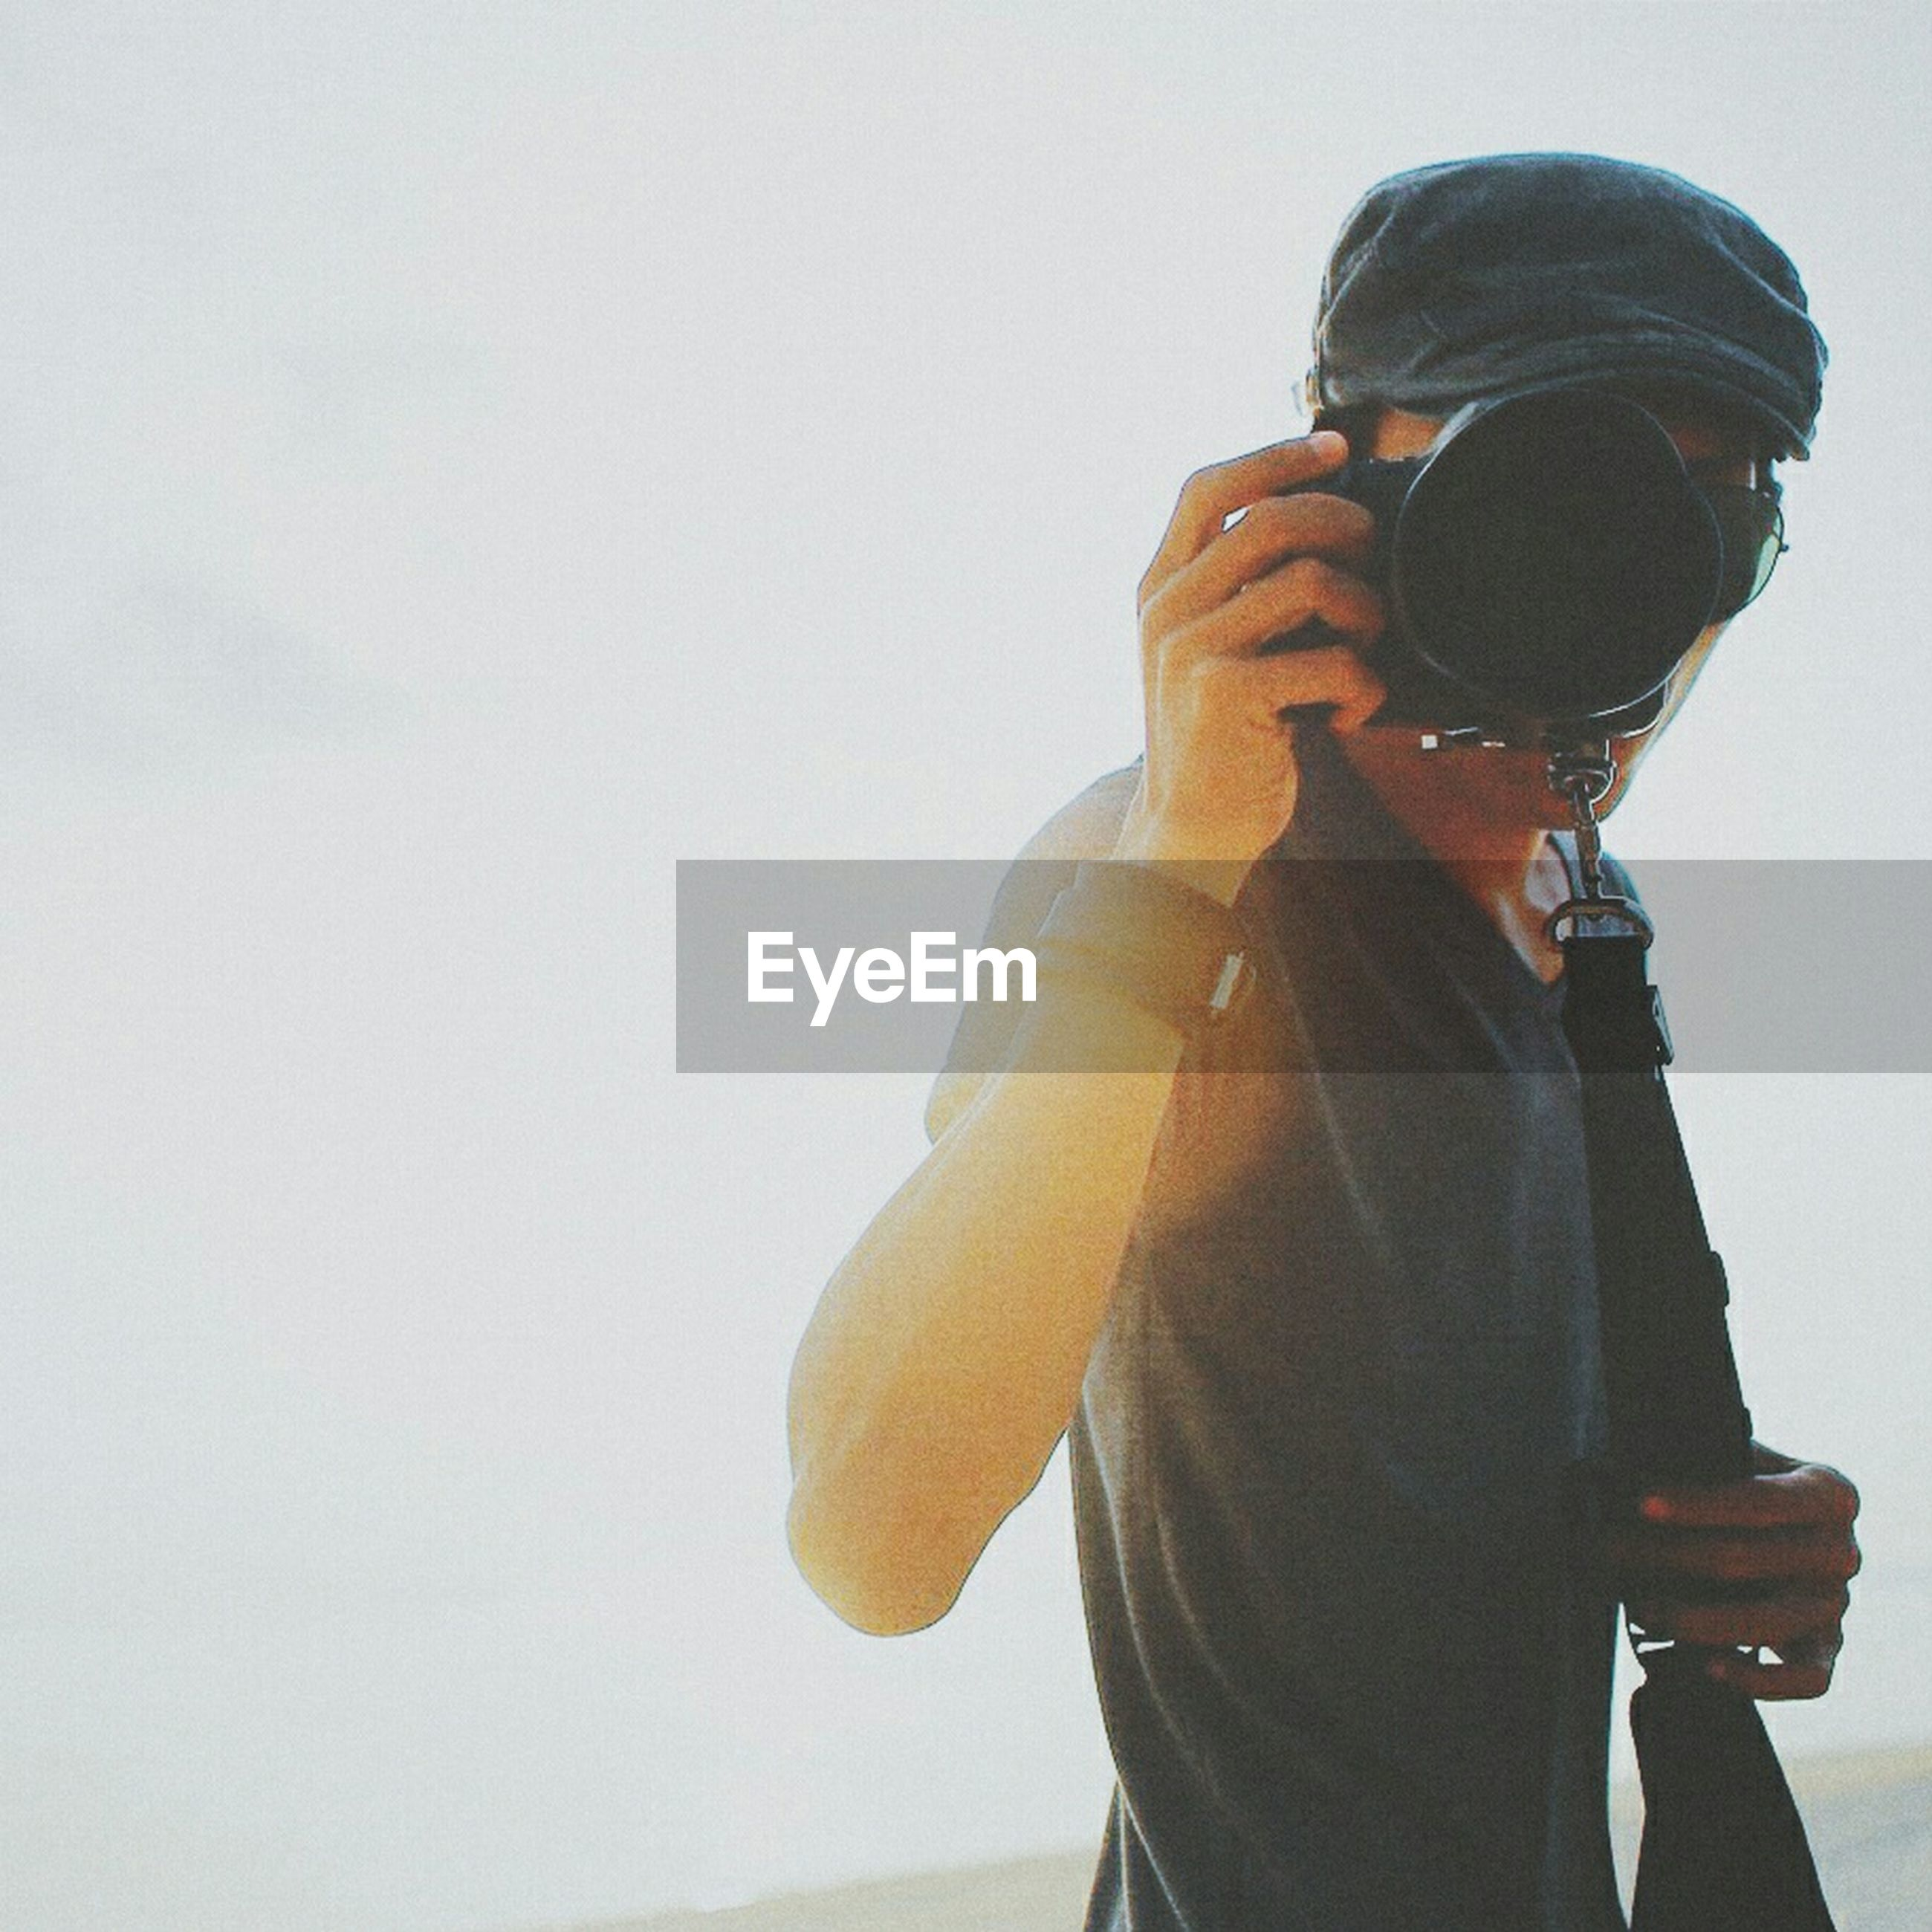 lifestyles, copy space, leisure activity, standing, three quarter length, casual clothing, waist up, rear view, clear sky, men, young adult, young men, holding, low angle view, headshot, side view, sky, hat